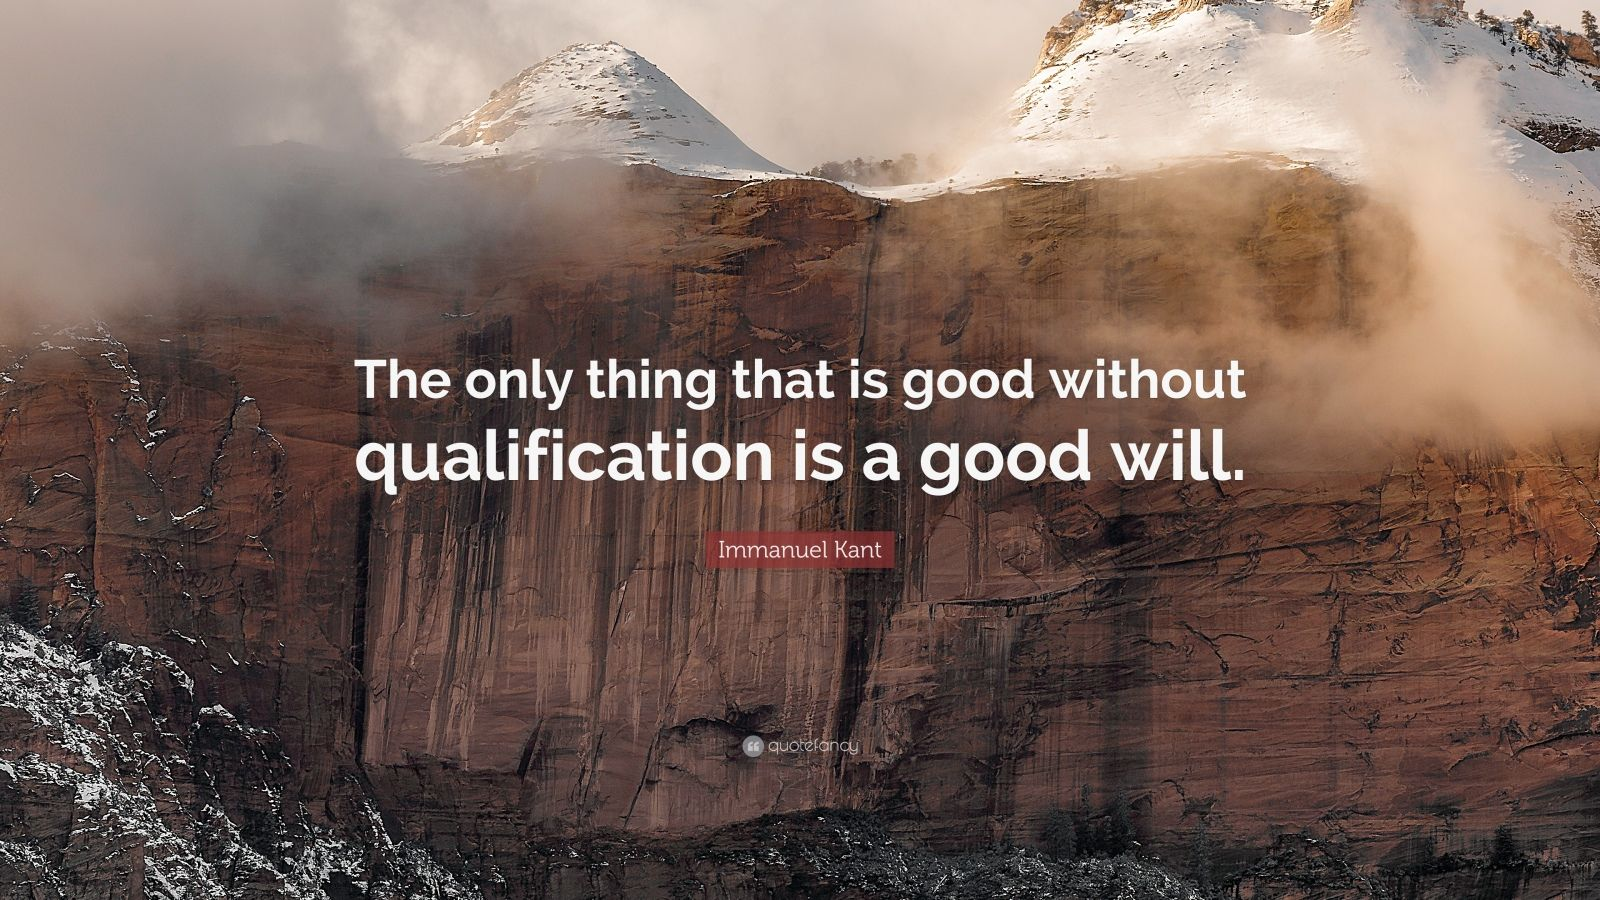 Without Qualification